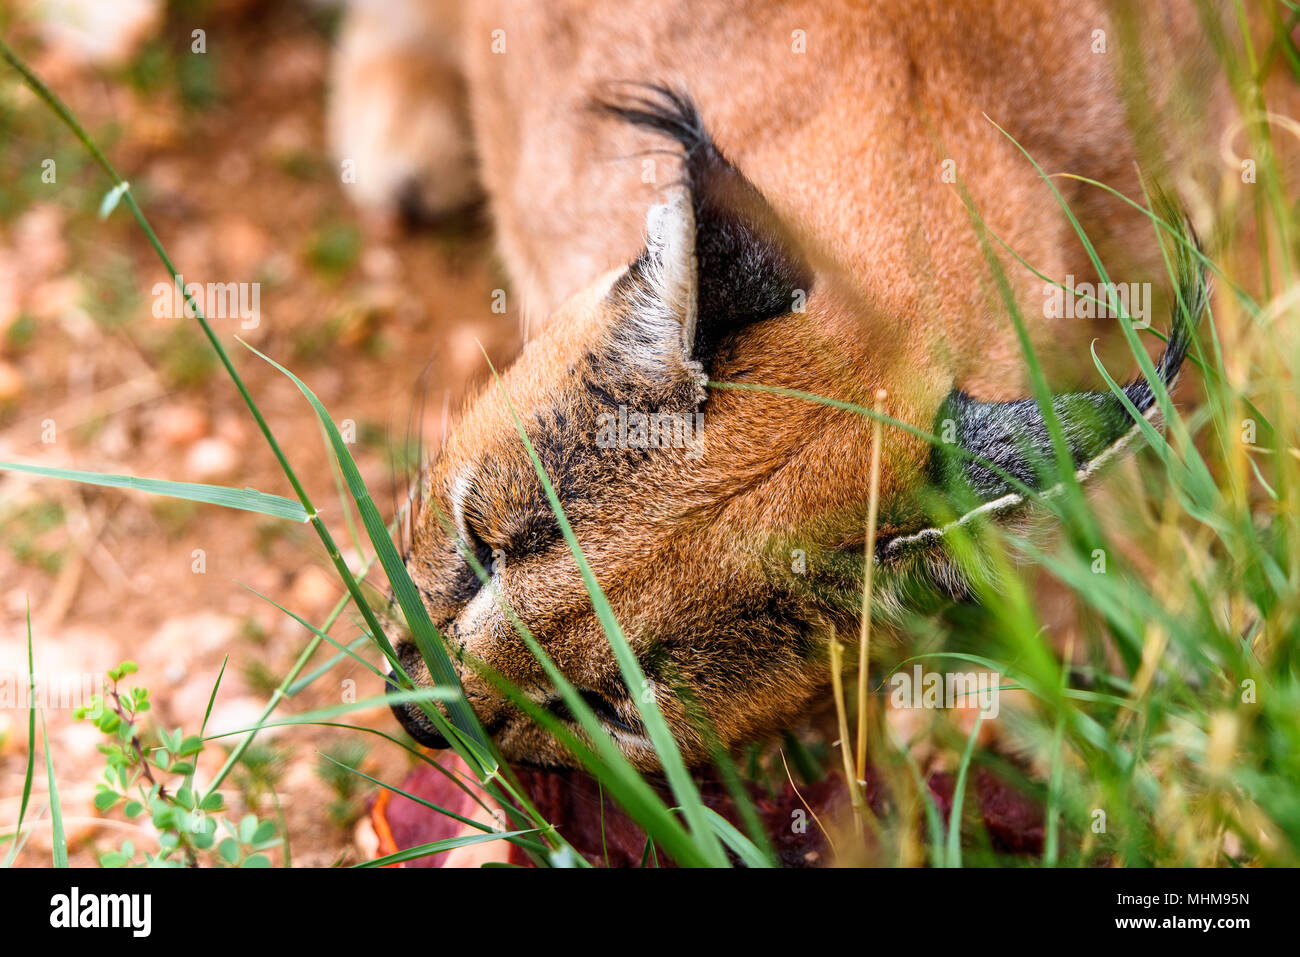 Caracal eating meat at the Naankuse Wildlife Sanctuary, Namibia, Africa - Stock Image